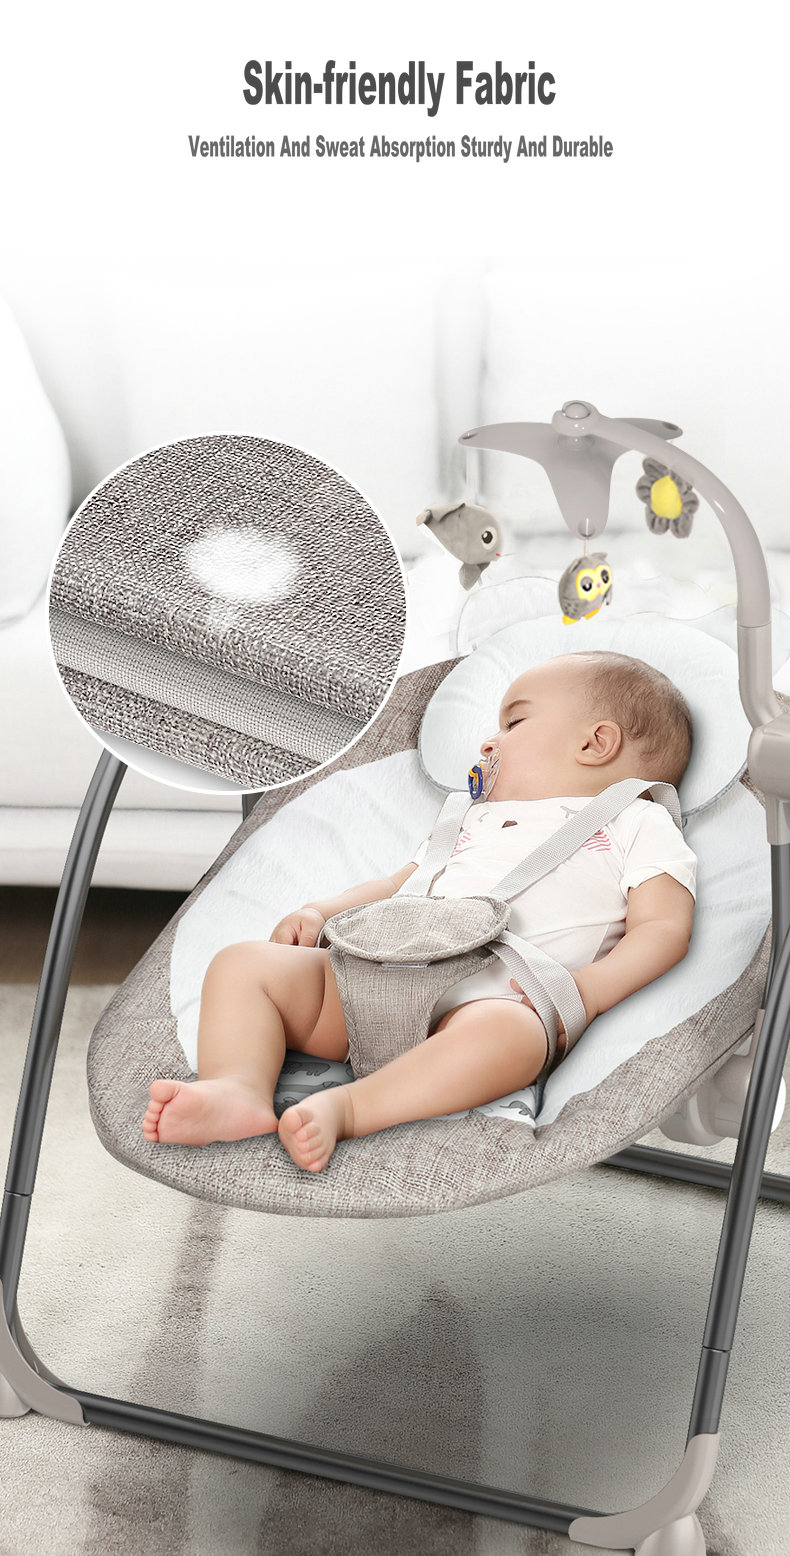 Hf39c452025144020878891ebbe6e3460b Baby Swing Multifunctional Baby Electric Baby Rocking Chair Electric Baby Cradle With Remote Control Cradle Rocking Chair